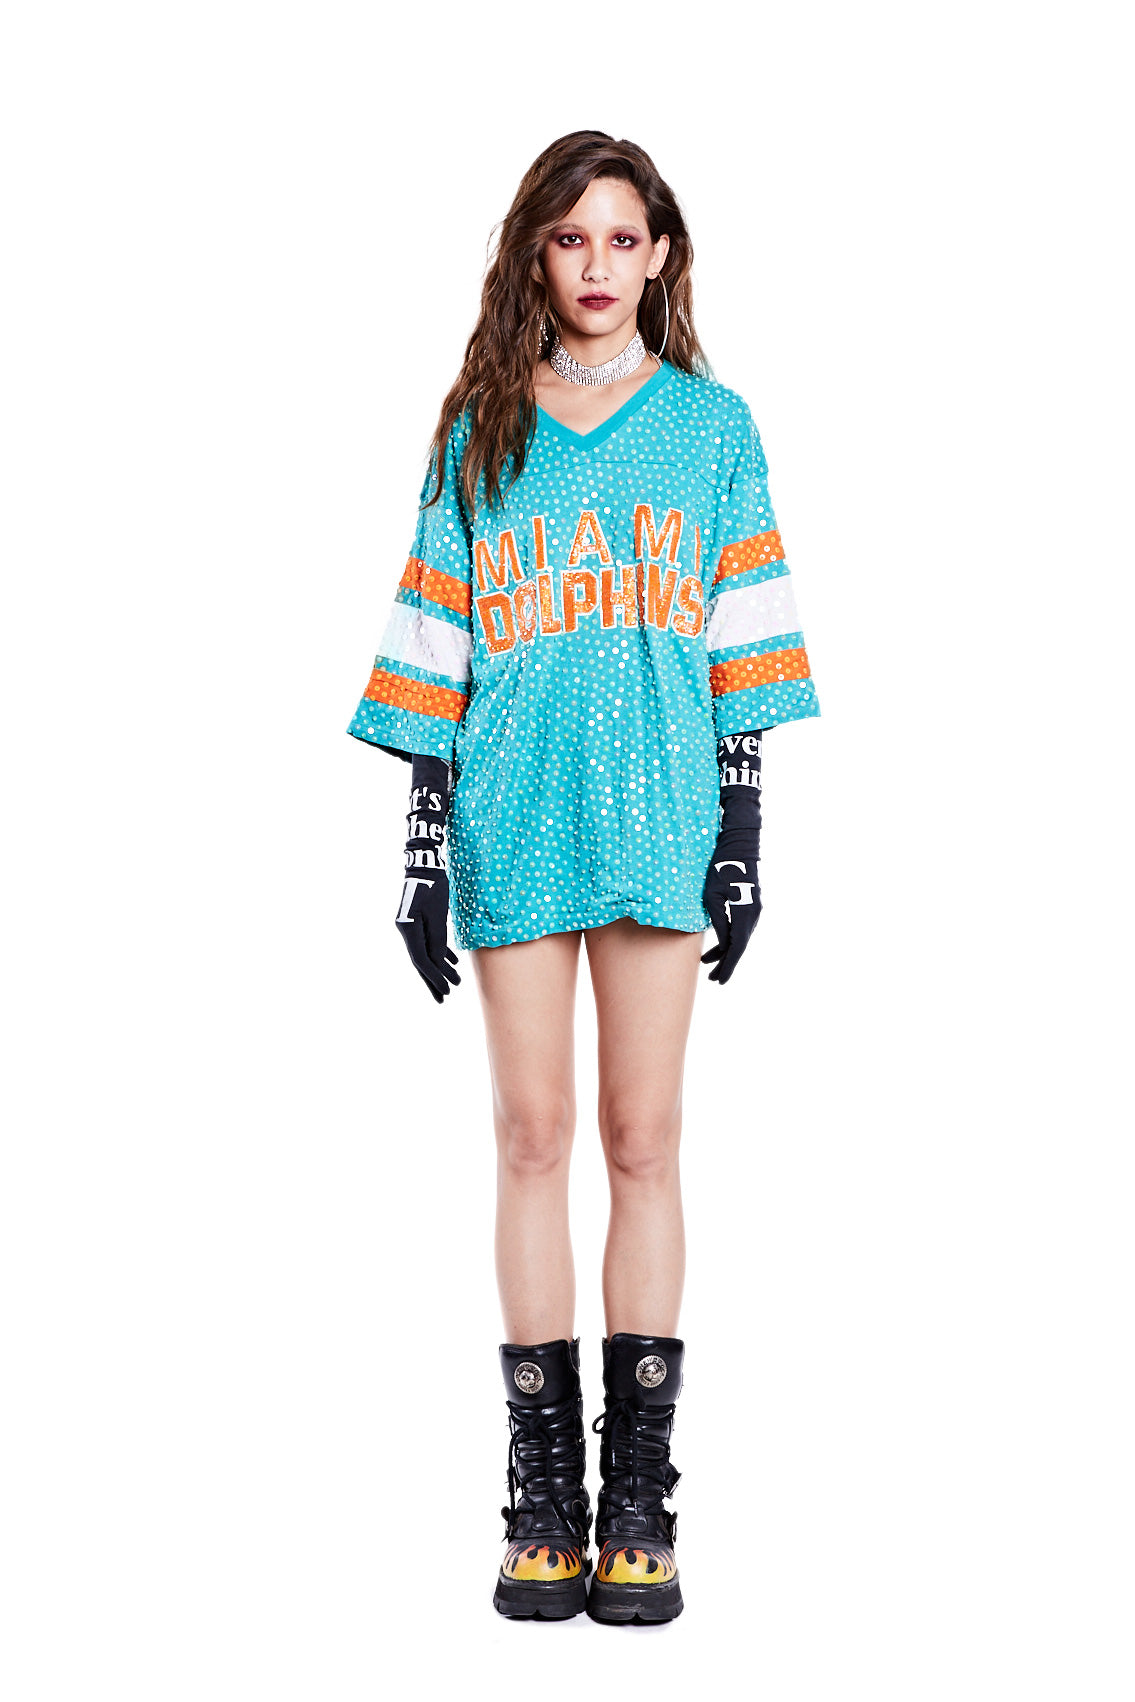 American Football Jersey Top - Miami Dolphins - I LOVE DIY by Panida